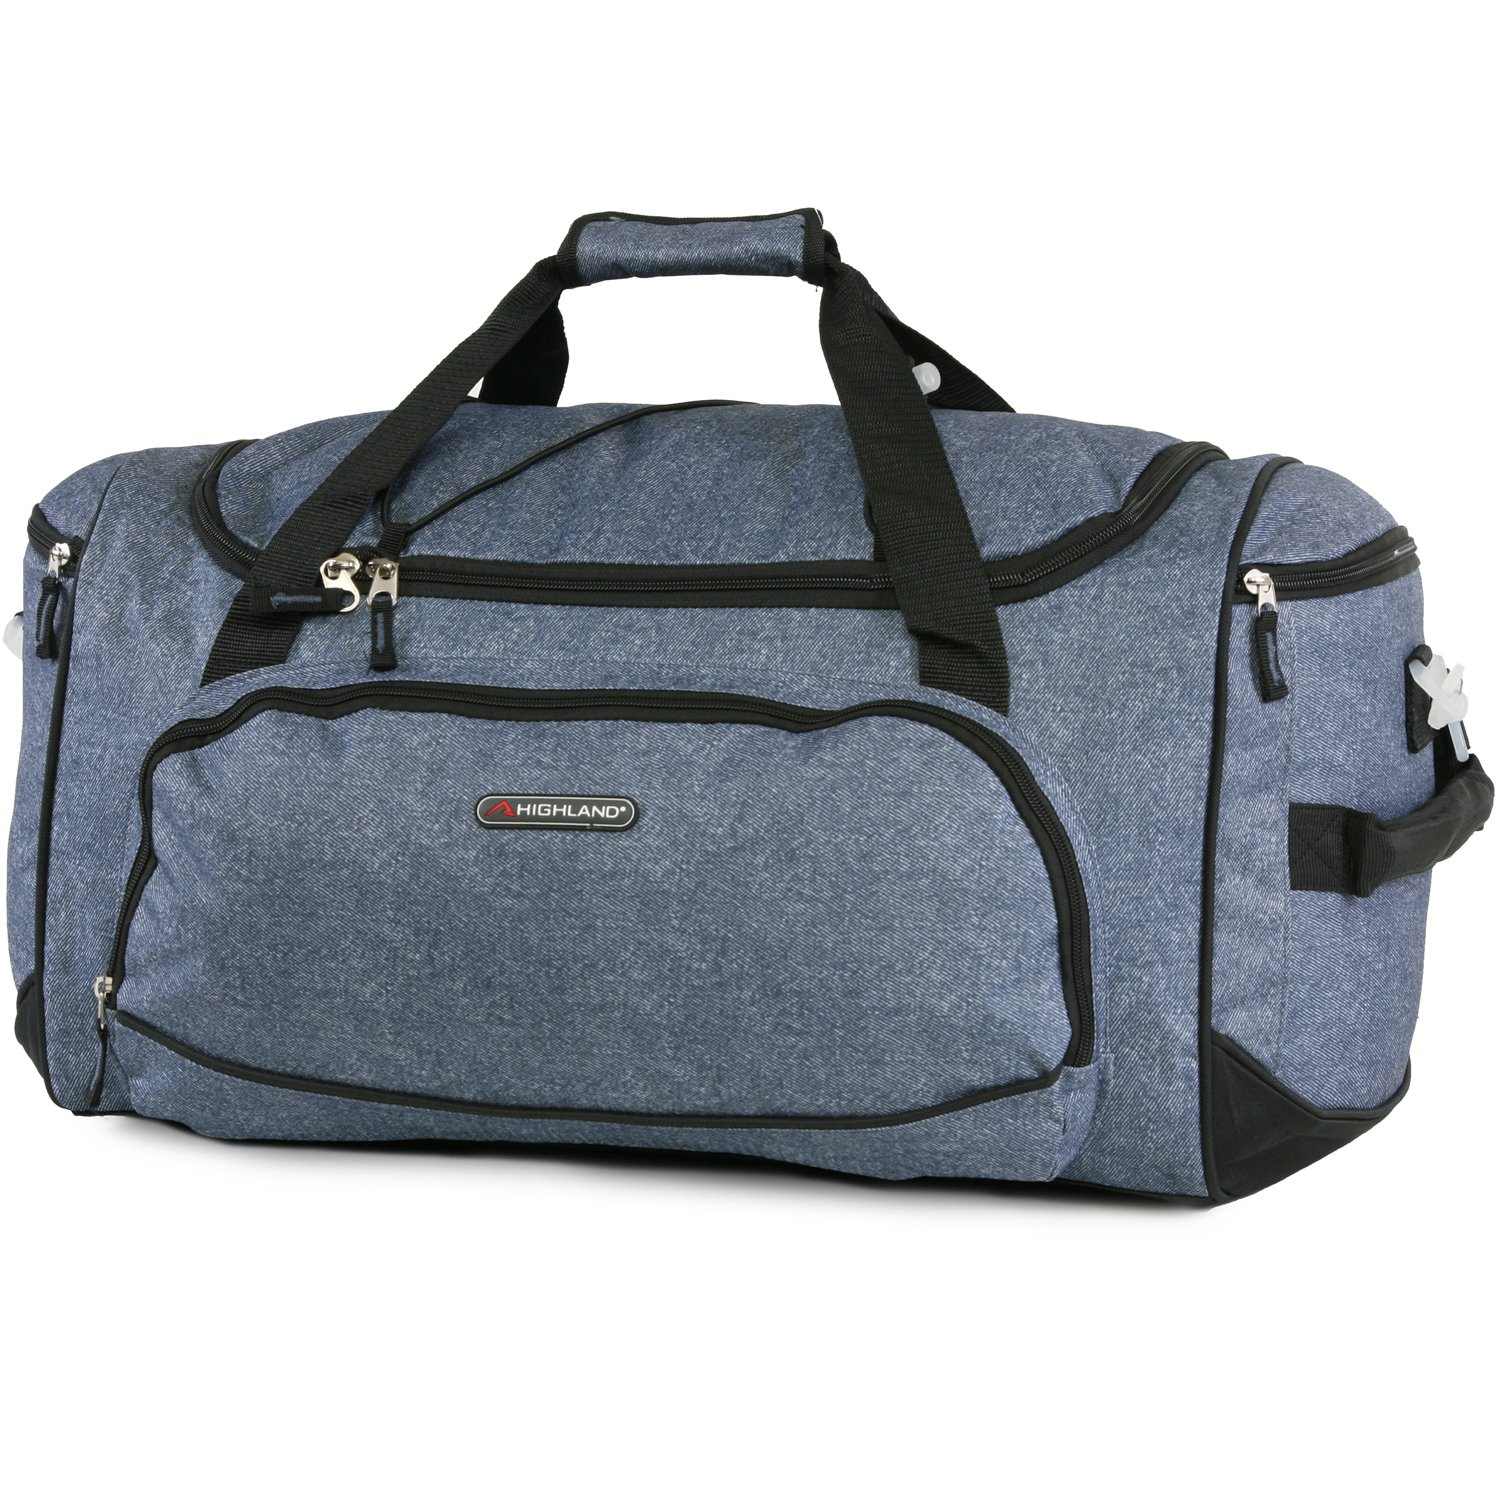 Pacific Coast Signature Medium Travel Duffel Bag, Static Blue